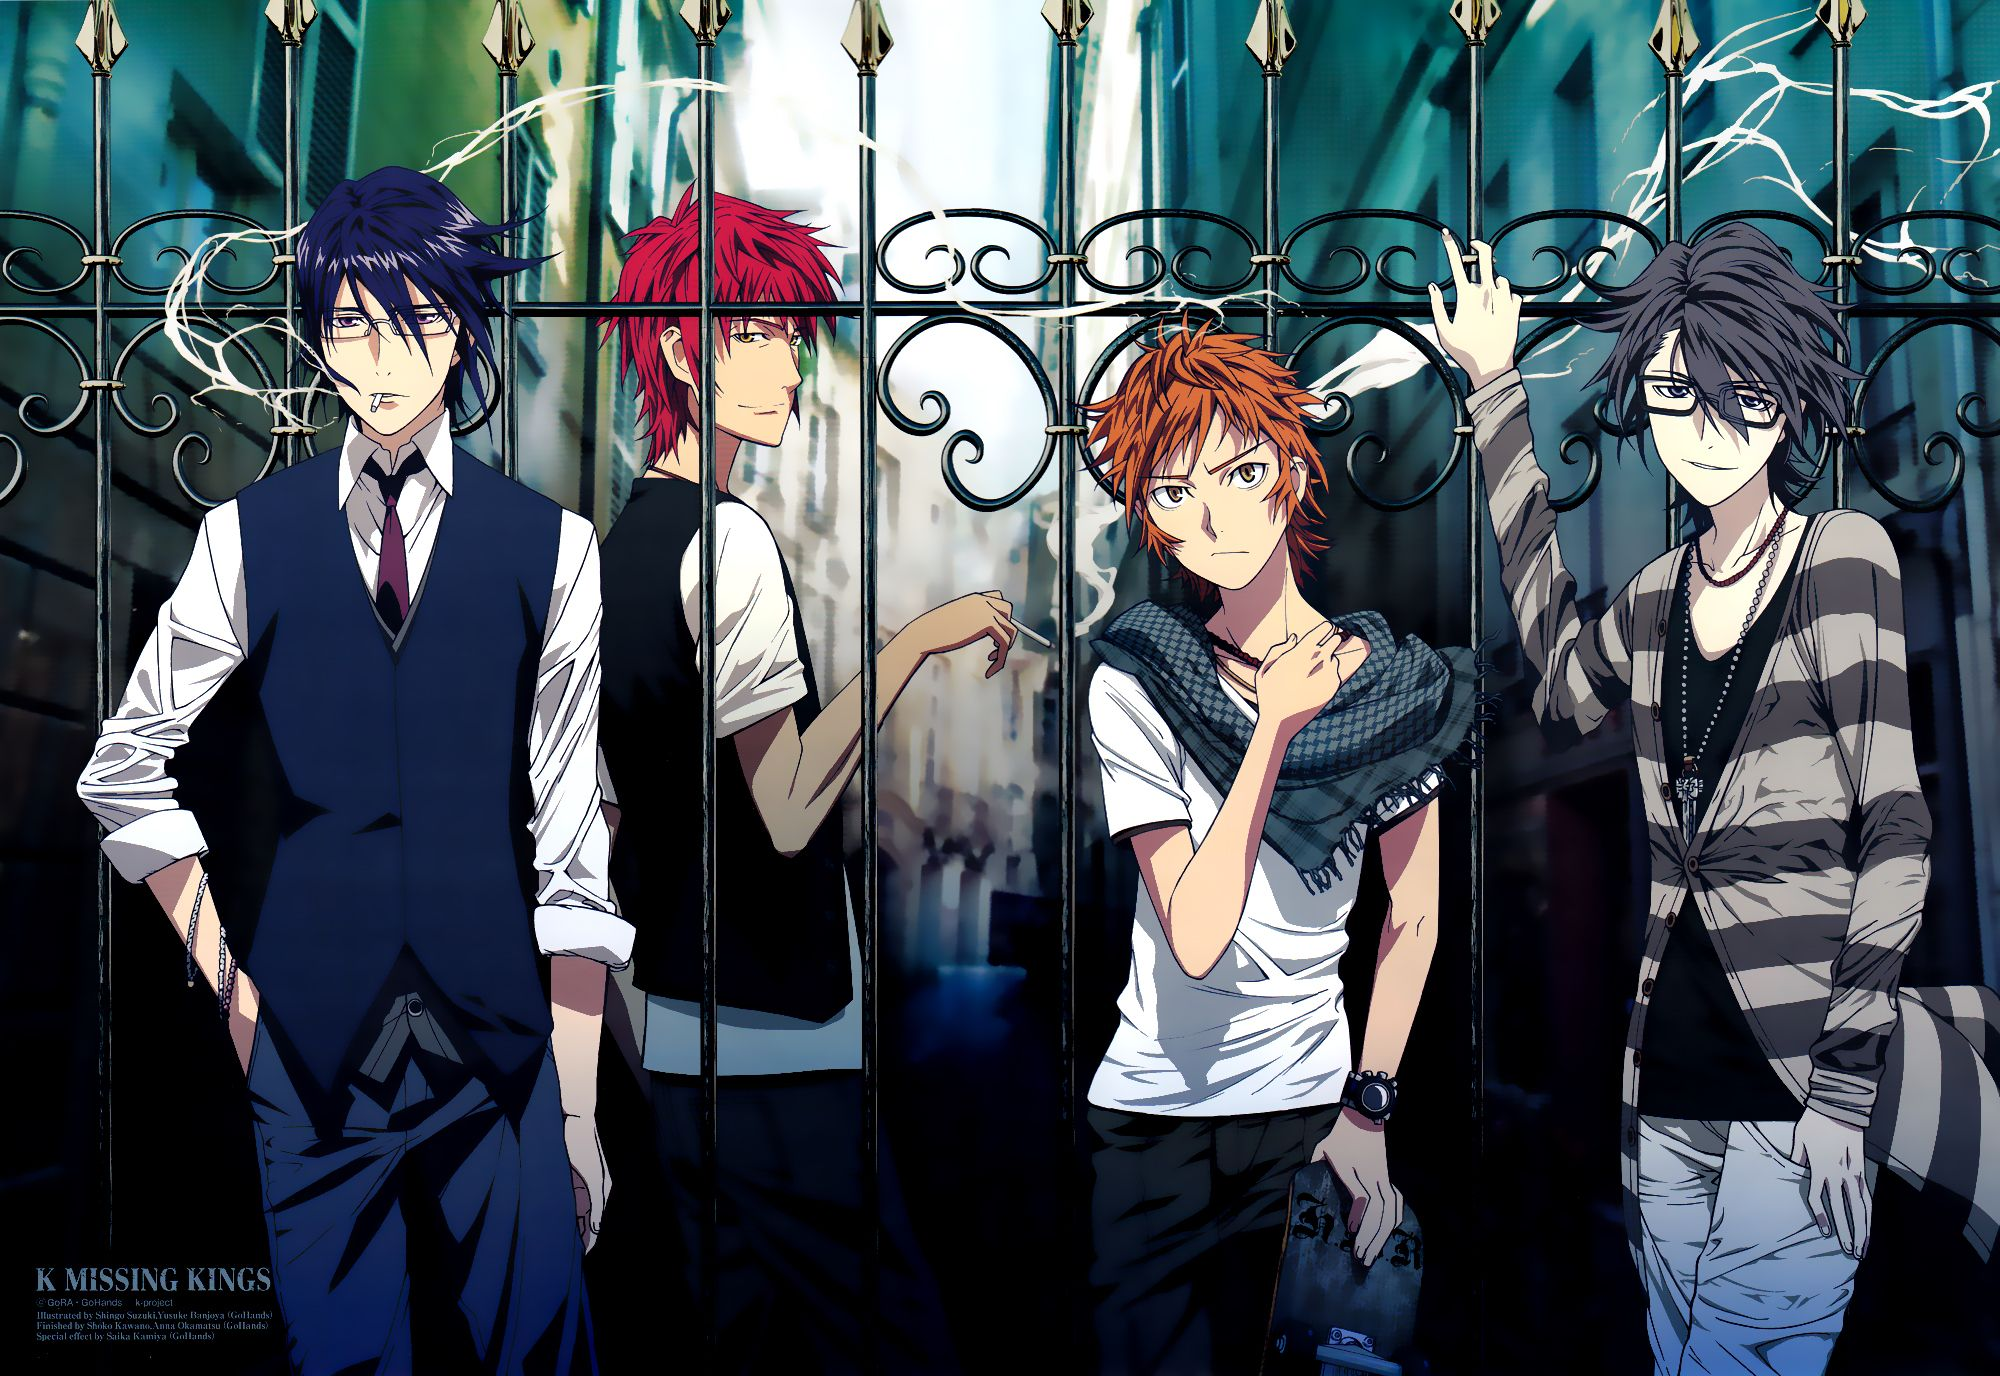 K Project Computer Wallpapers Desktop Backgrounds 2000x1376 Id 654668 K Project Anime Munakata K Project